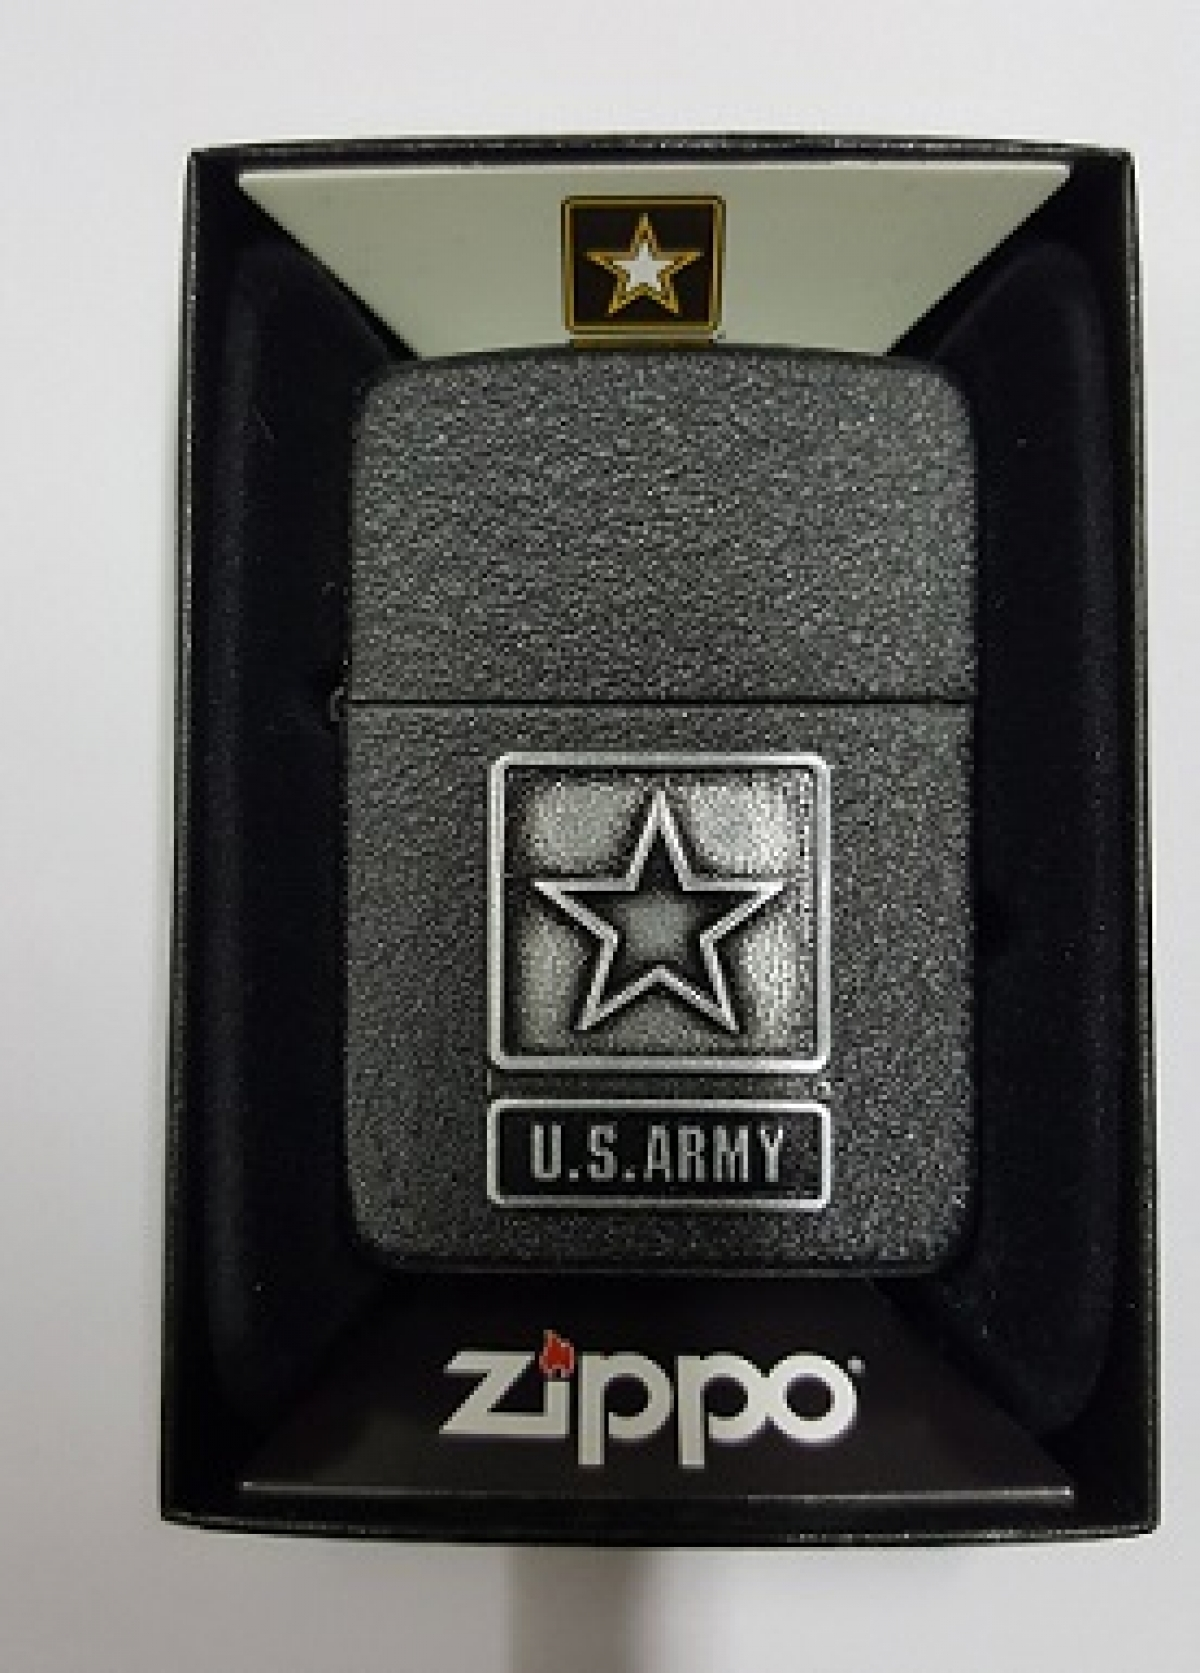 Zippo Pocket Lighter 2003872 US Army